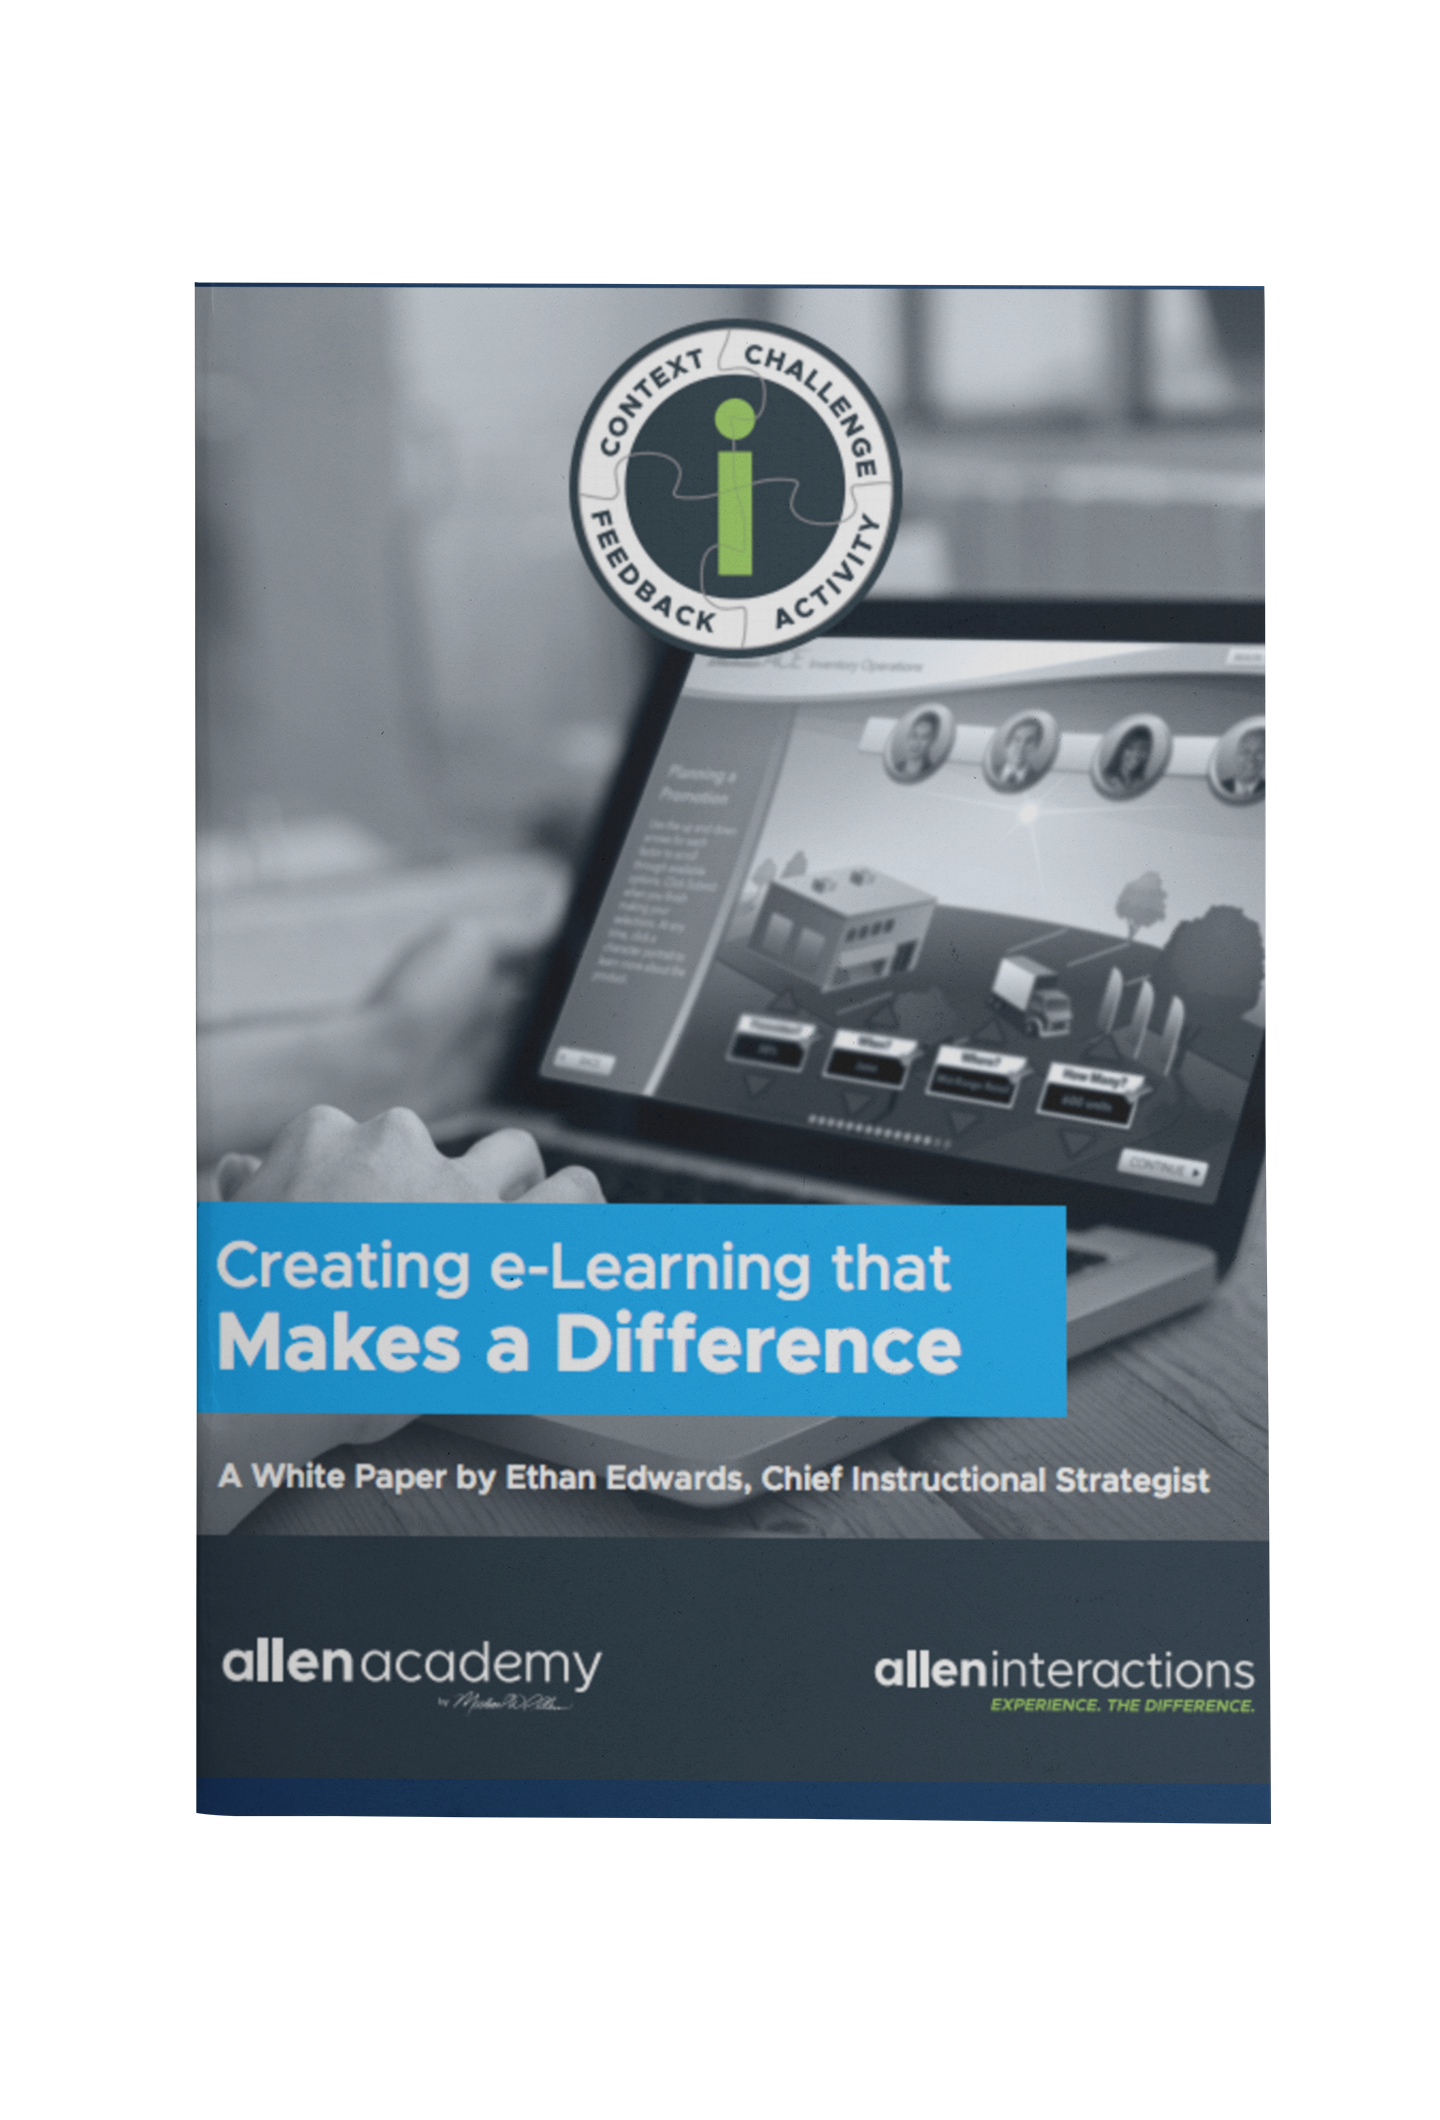 White Paper Creating e-Learning That Makes a Difference